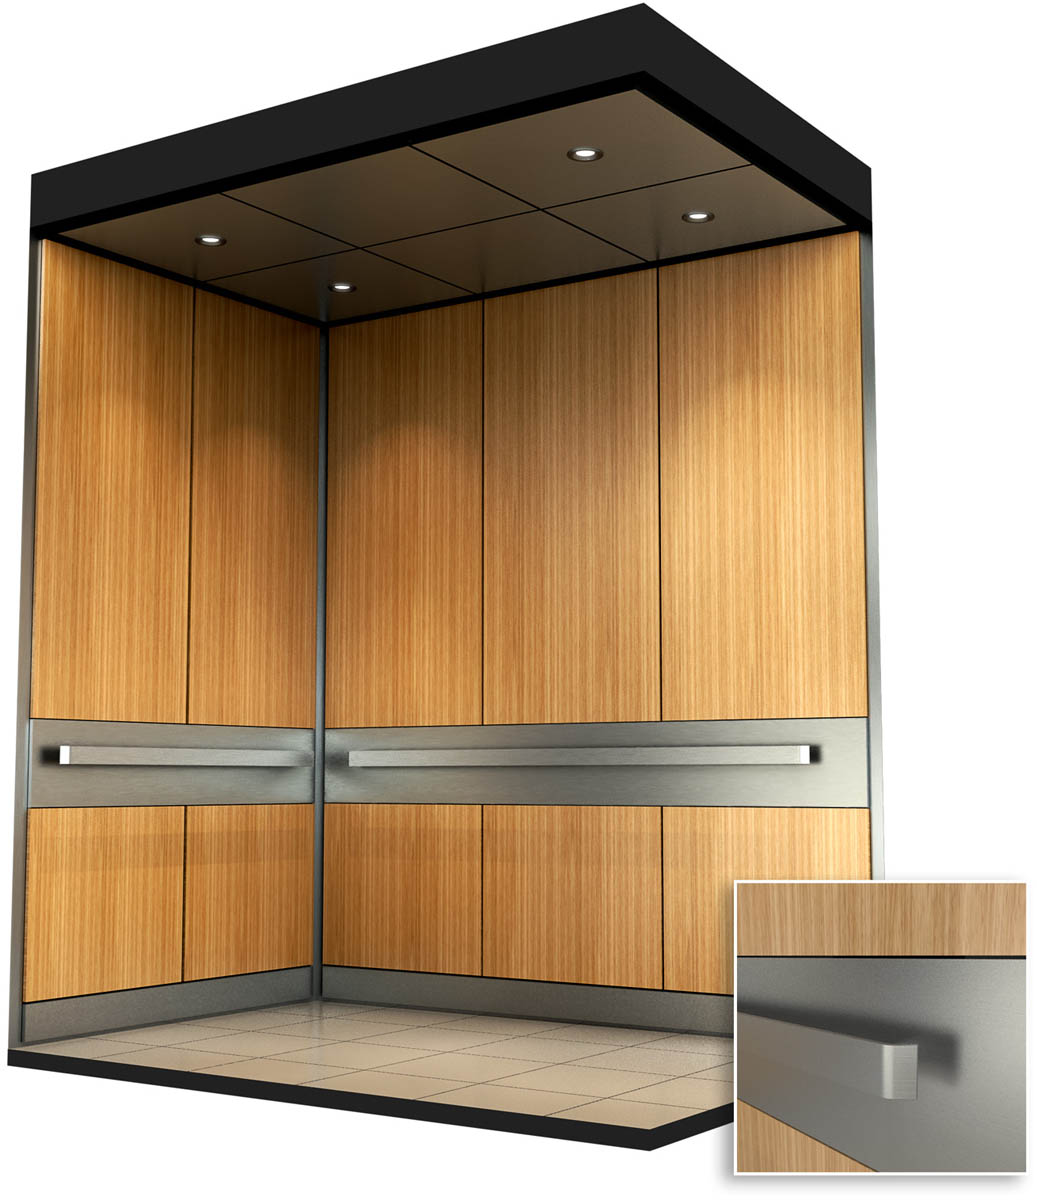 Interior cab design cbm elevators ottawa for Elevator designs